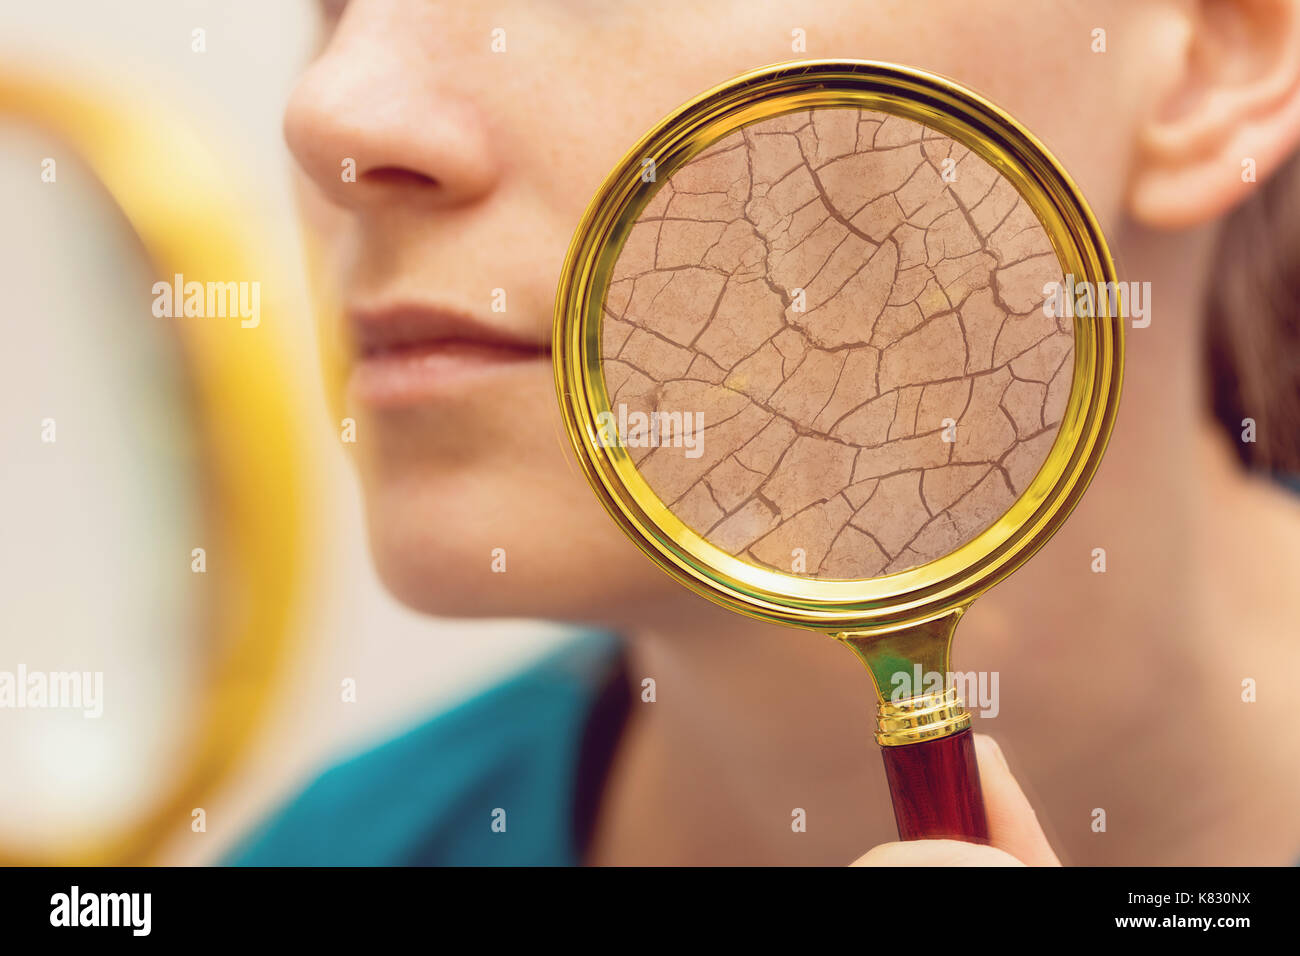 aging and dry face skin concept - woman with magnifying glass - Stock Image